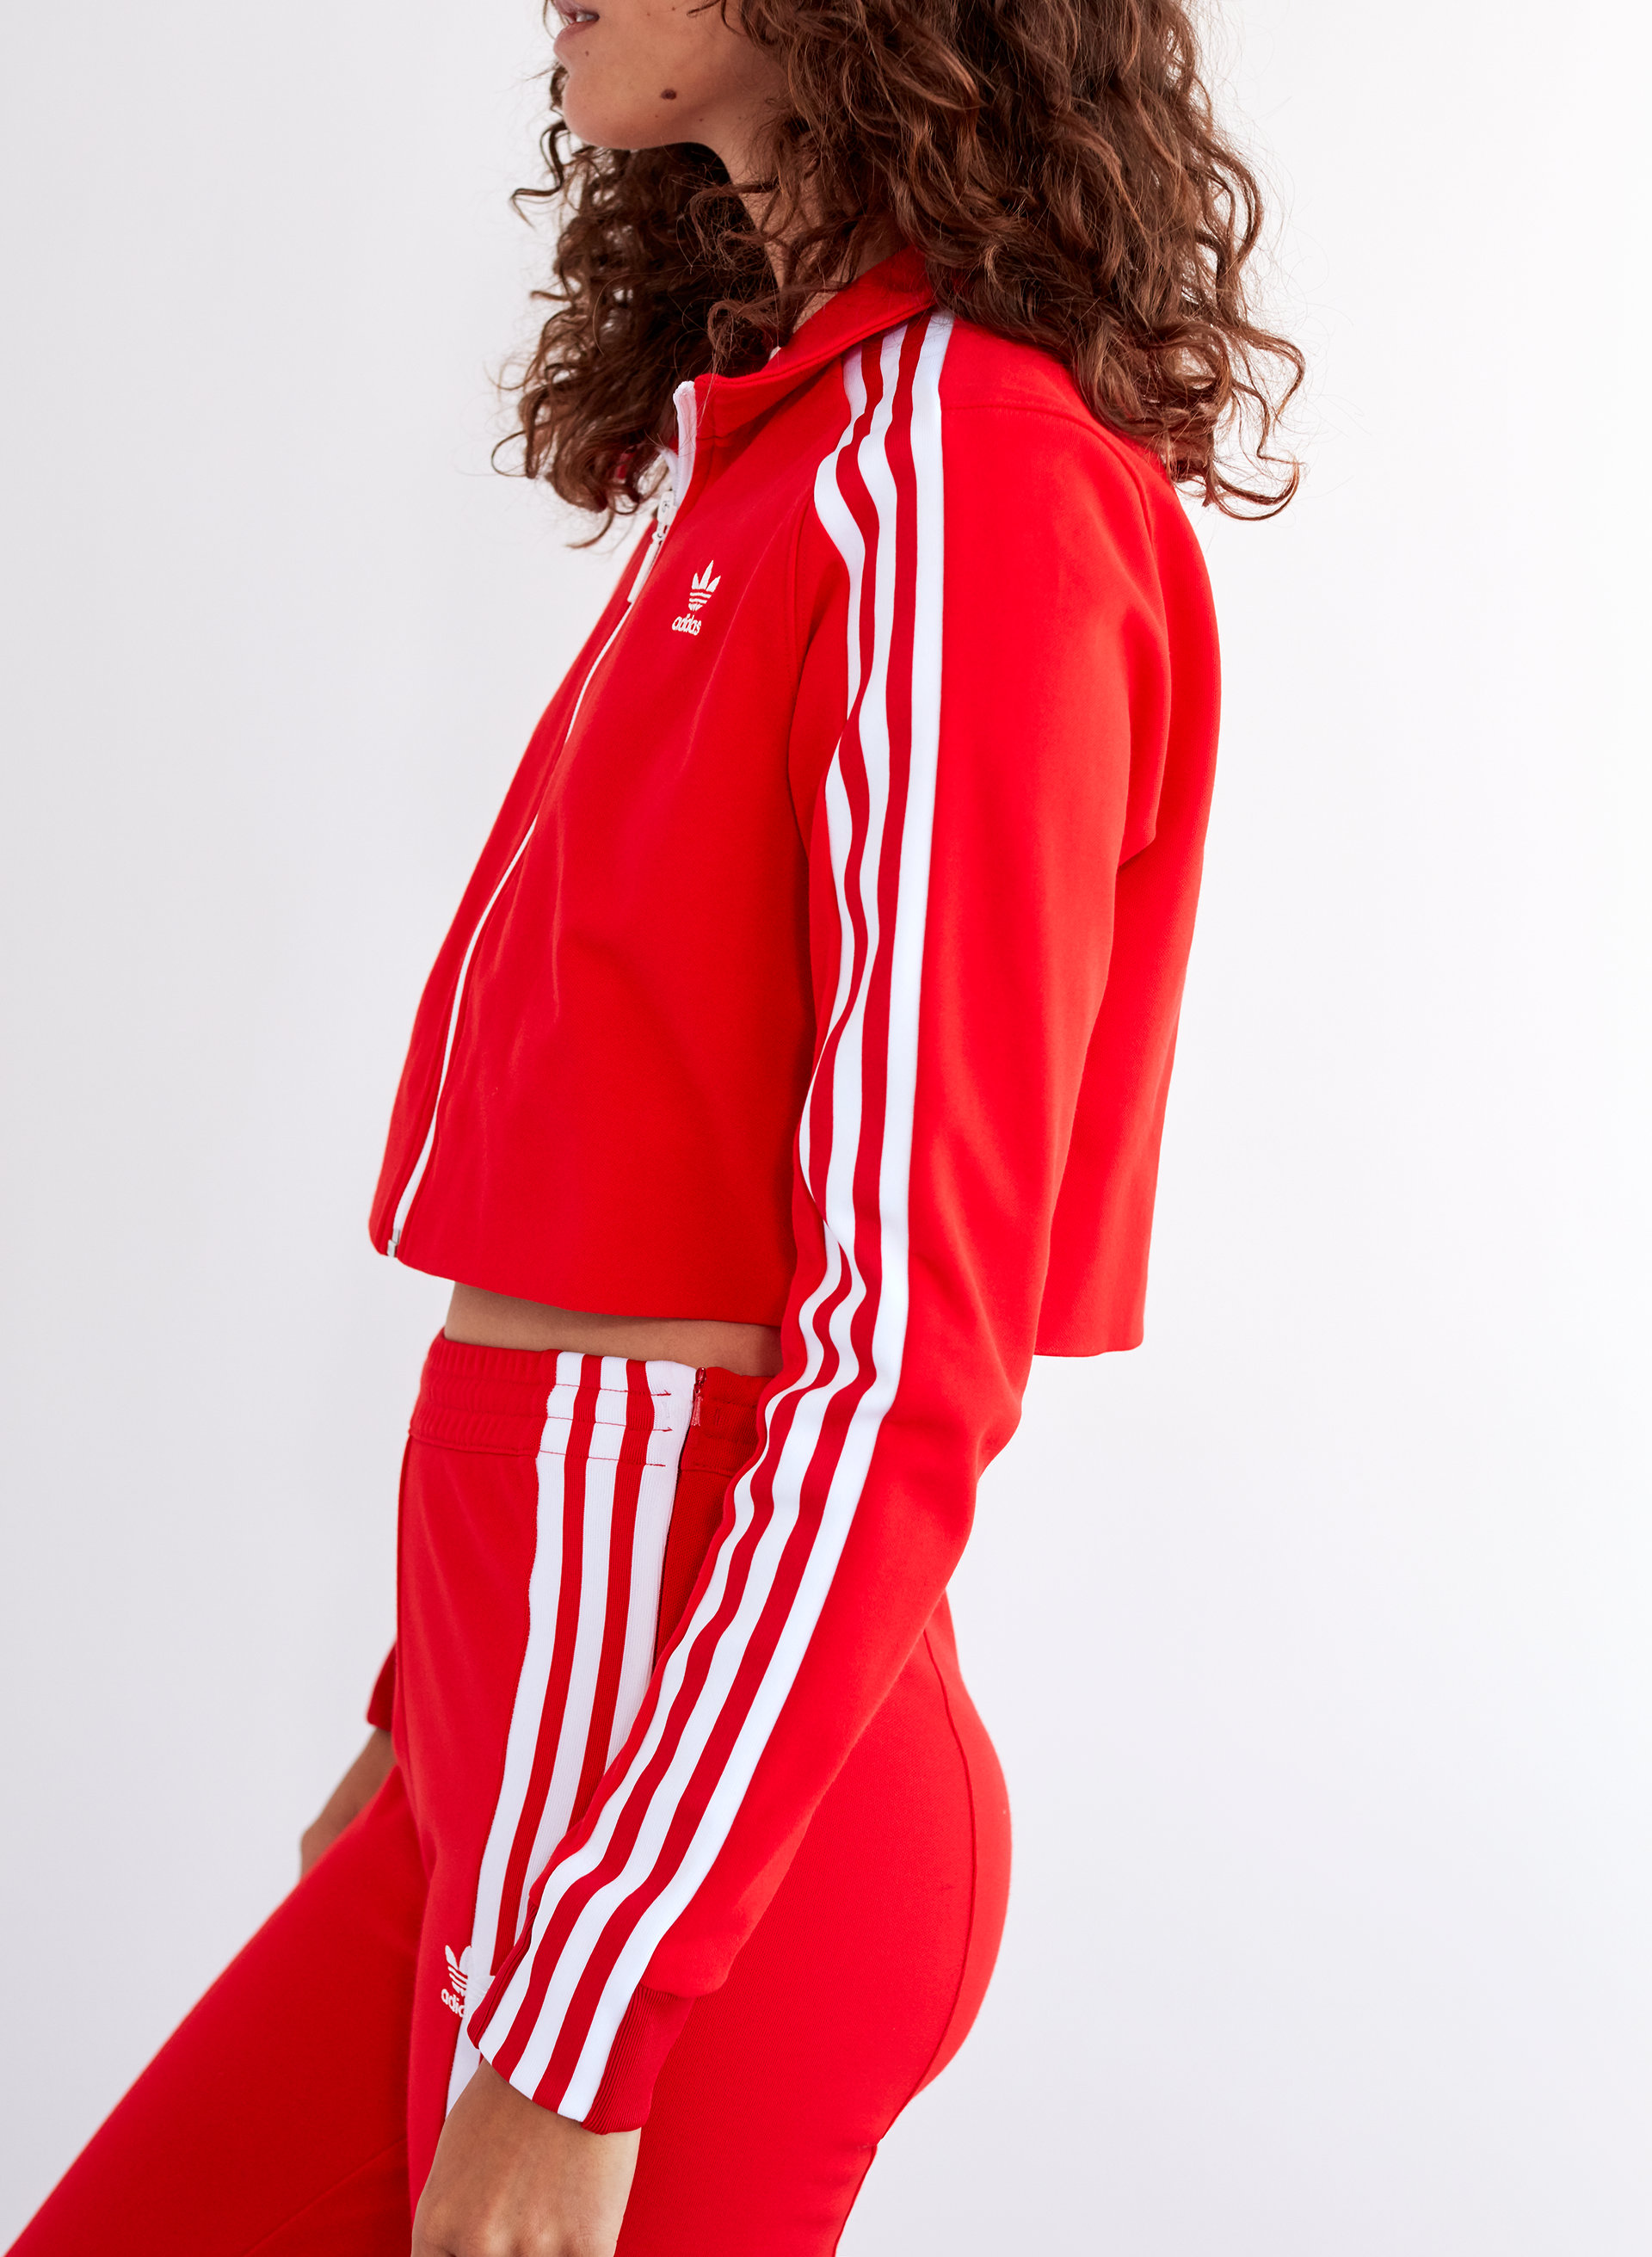 10 Best Sport's wear images   Sport wear, Adidas, Adidas outfit